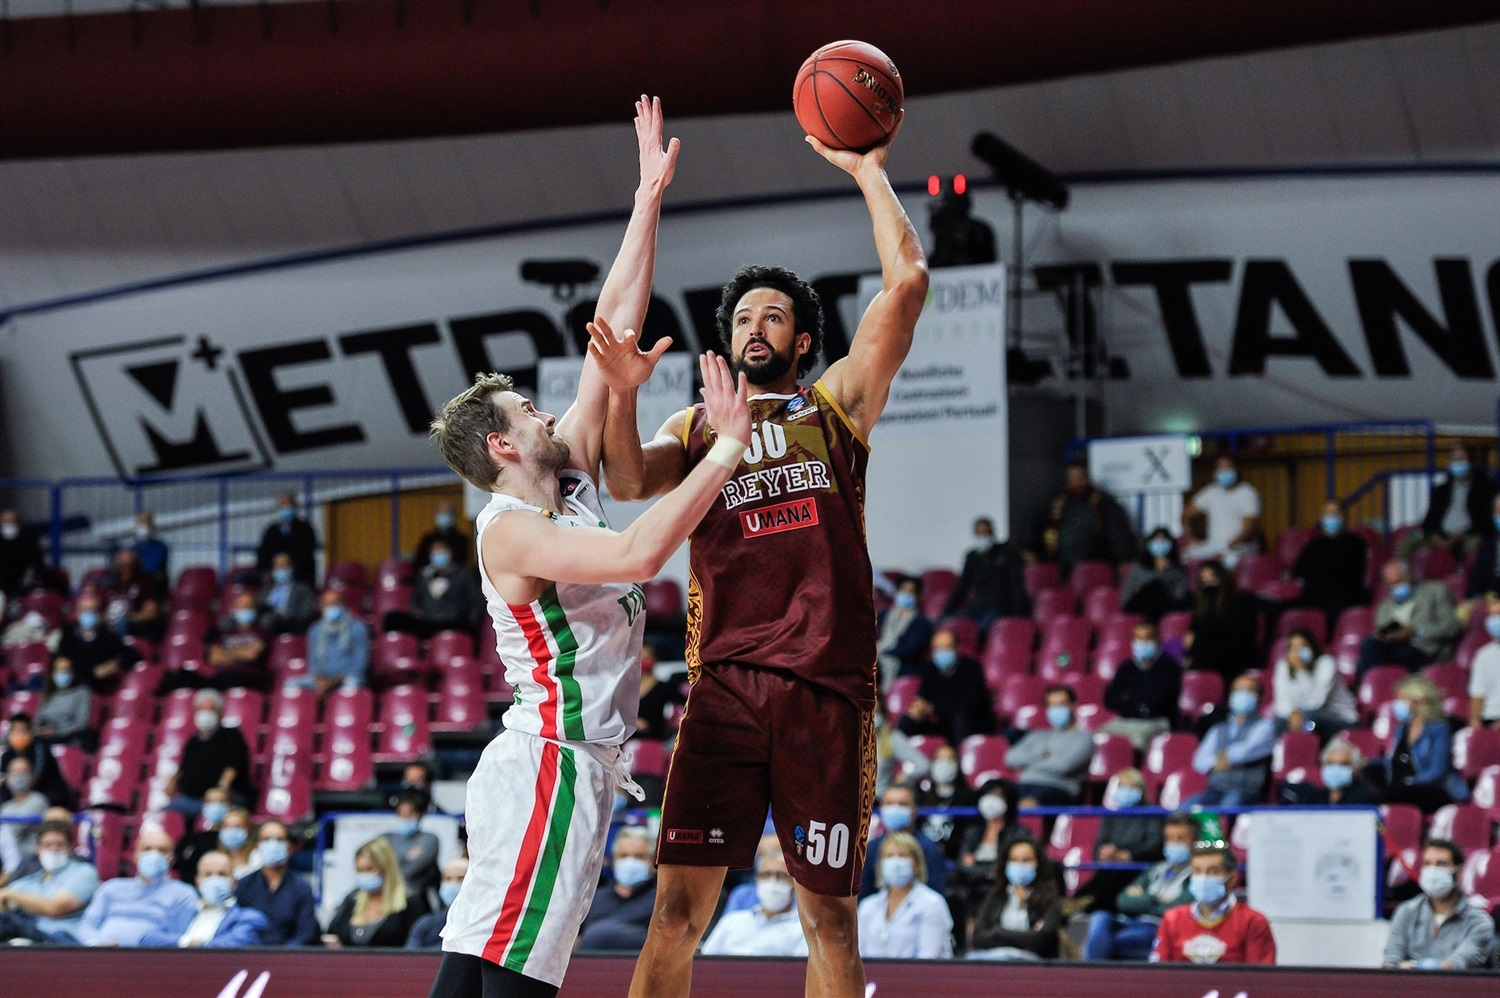 Mitchell Watt - Umana Reyer Venice (photo Reyer) - EC20